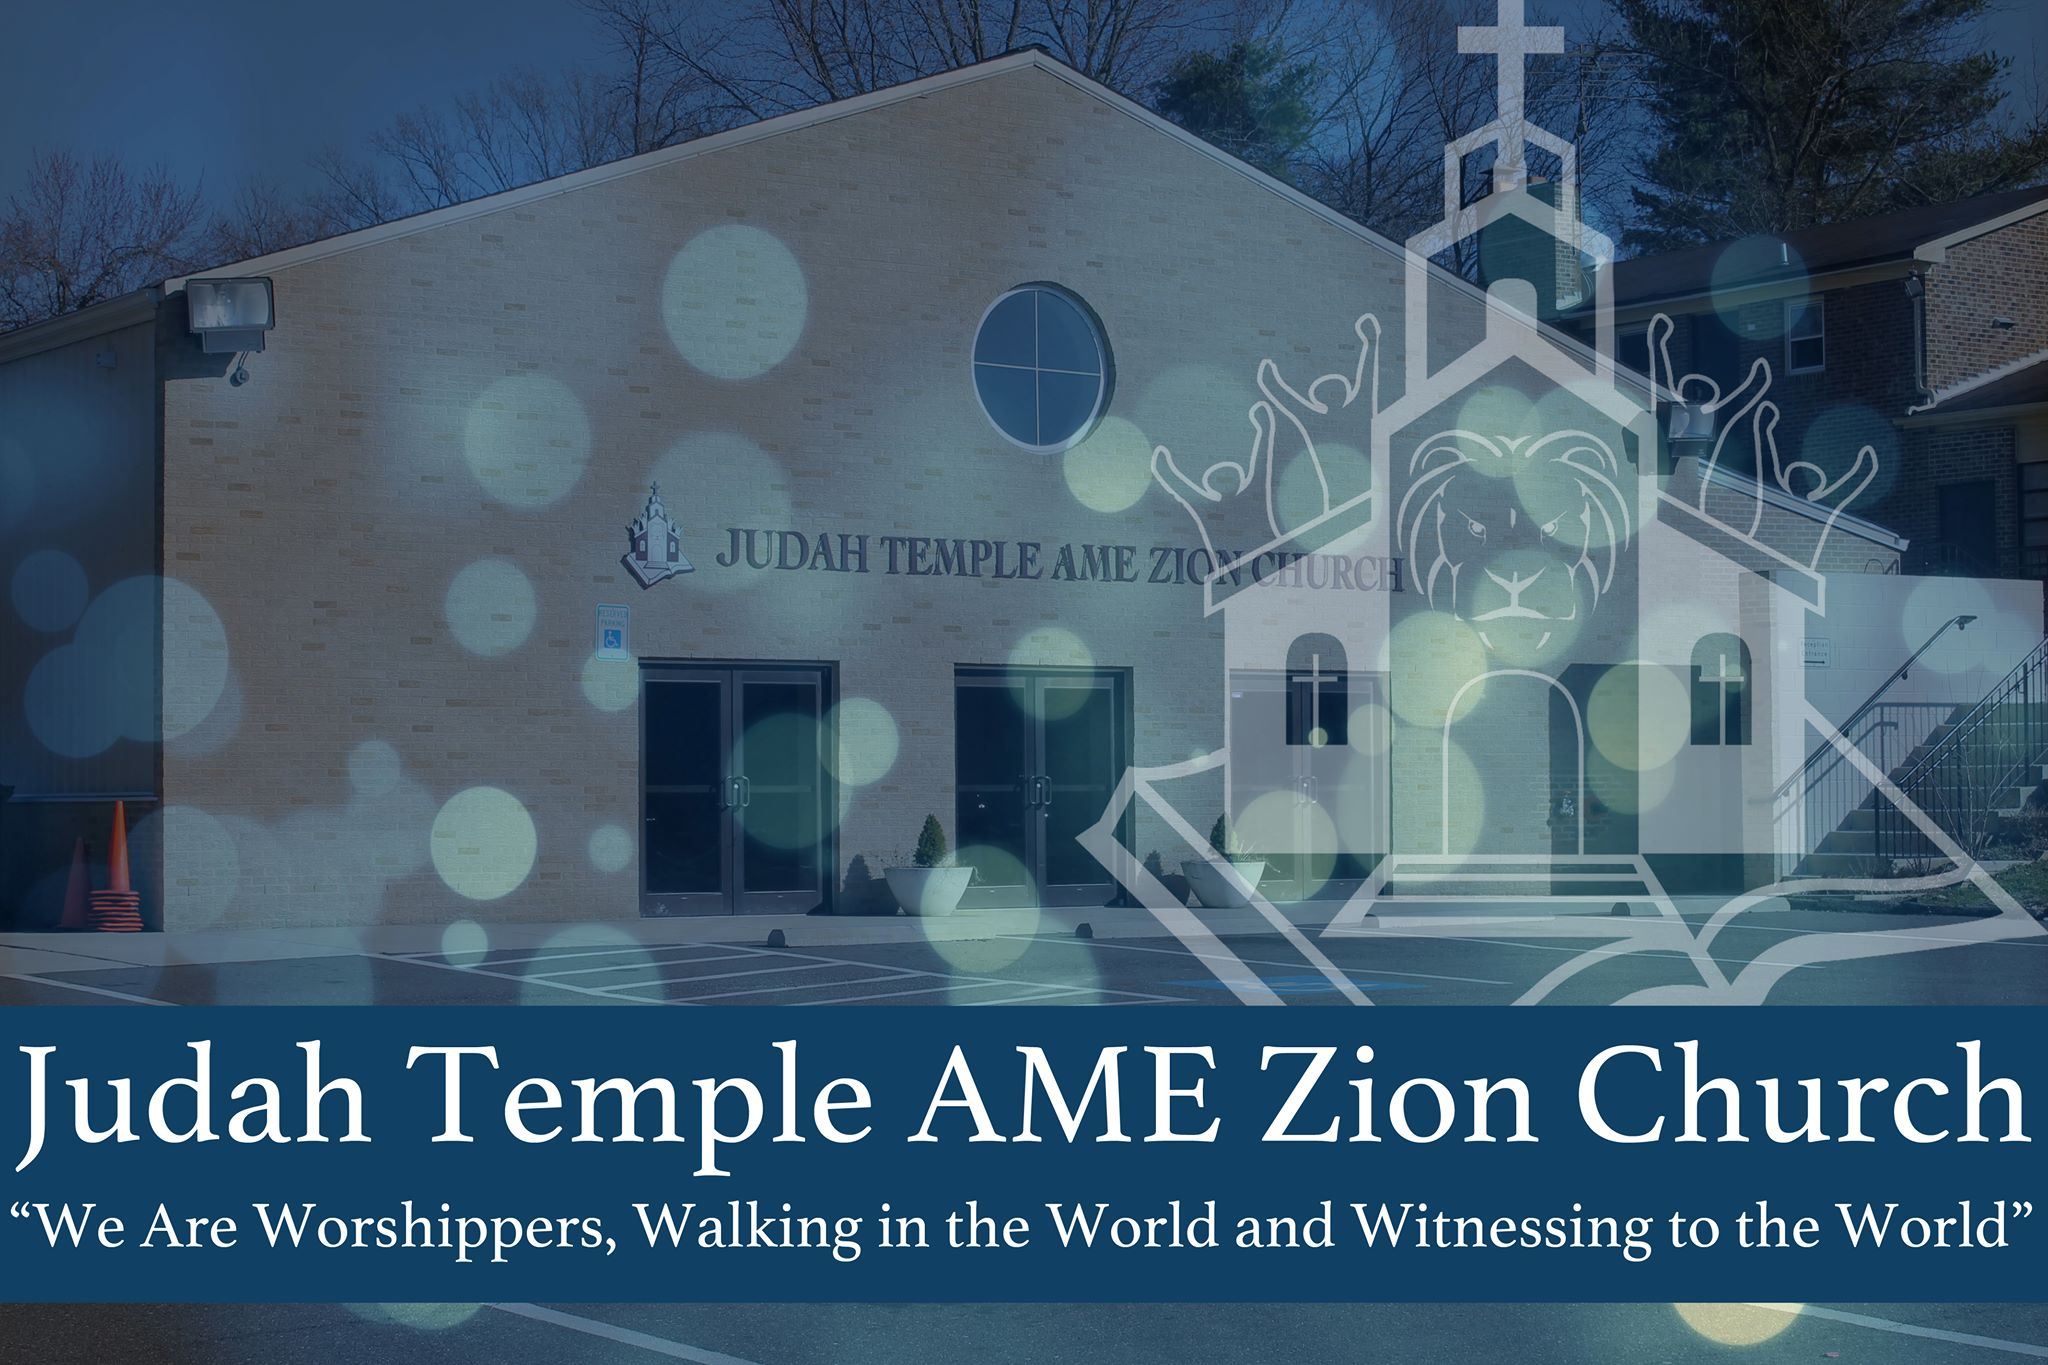 Judah Temple AME Zion Church of Mitchellville, MD